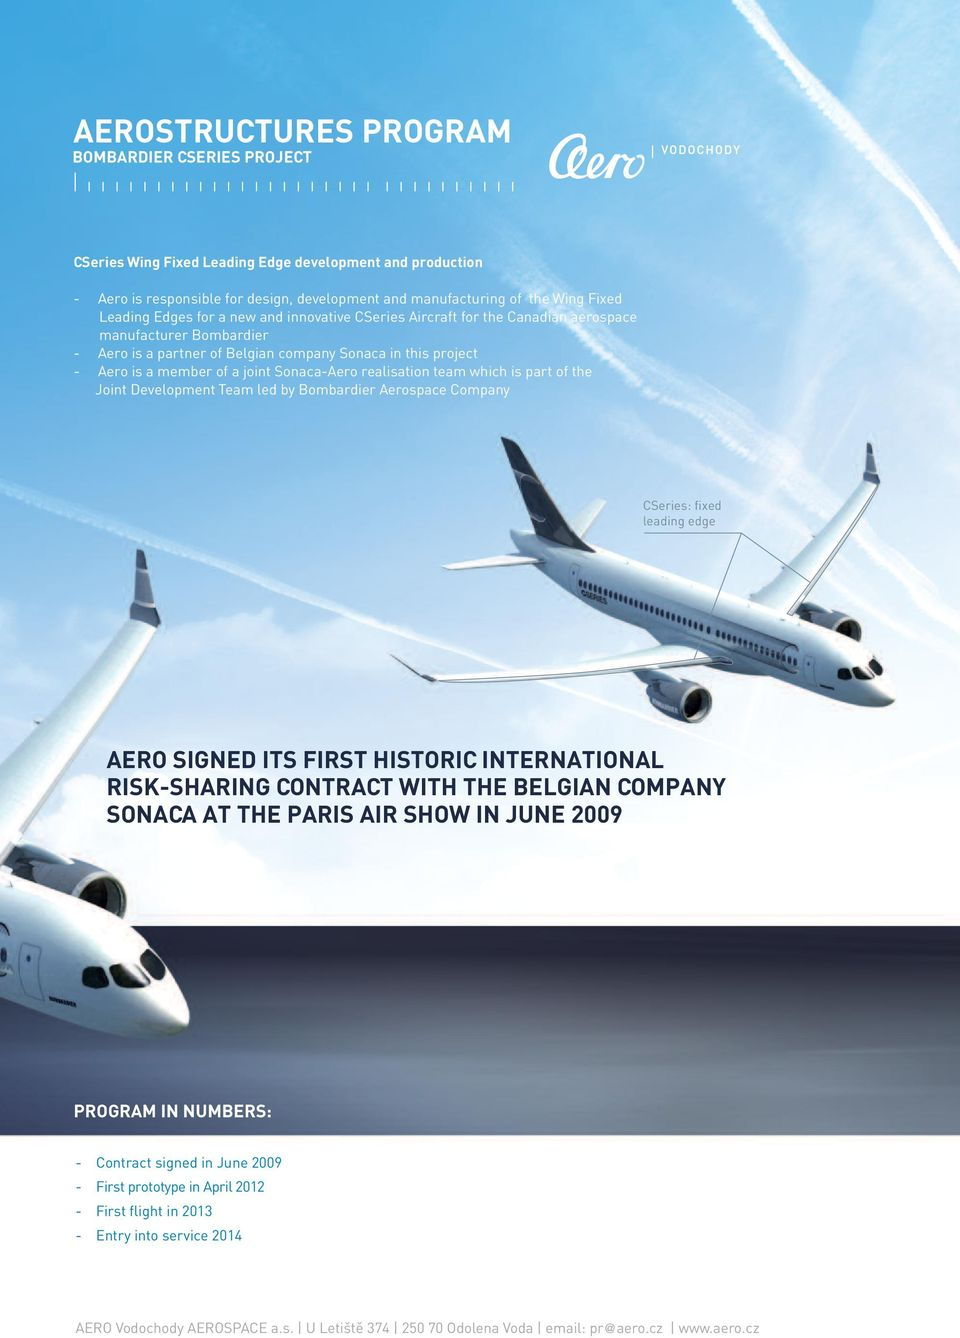 realisation team which is part of the Joint Development Team led by Bombardier Aerospace Company CSeries: fixed leading edge AERO SIGNED ITS FIRST HISTORIC INTERNATIONAL RISK-SHARING CONTRACT